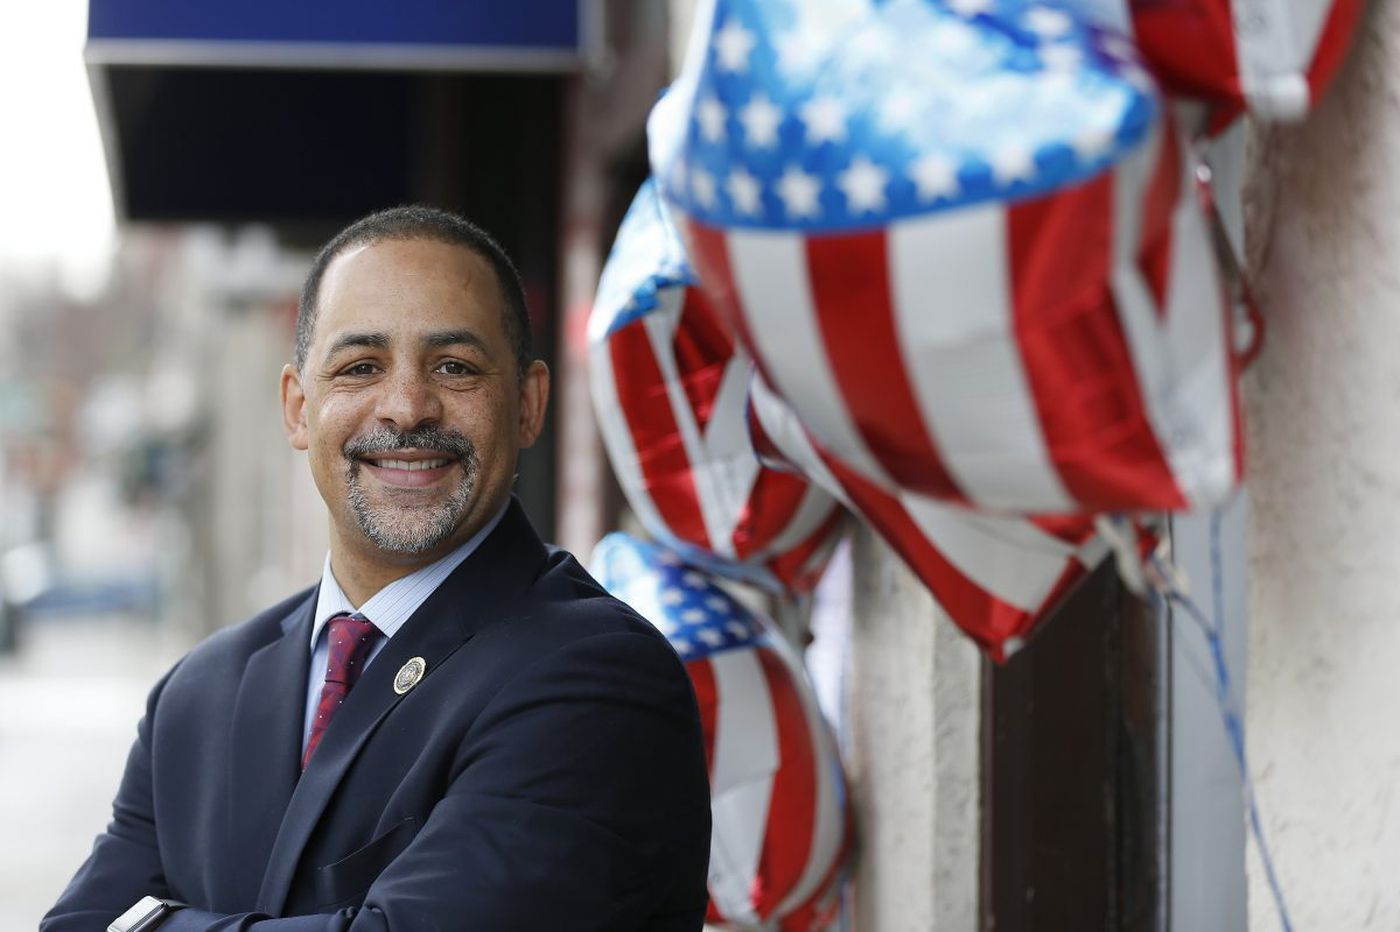 Why can't a candidate have more than one party's nomination? Philly Democrat challenges state ban.